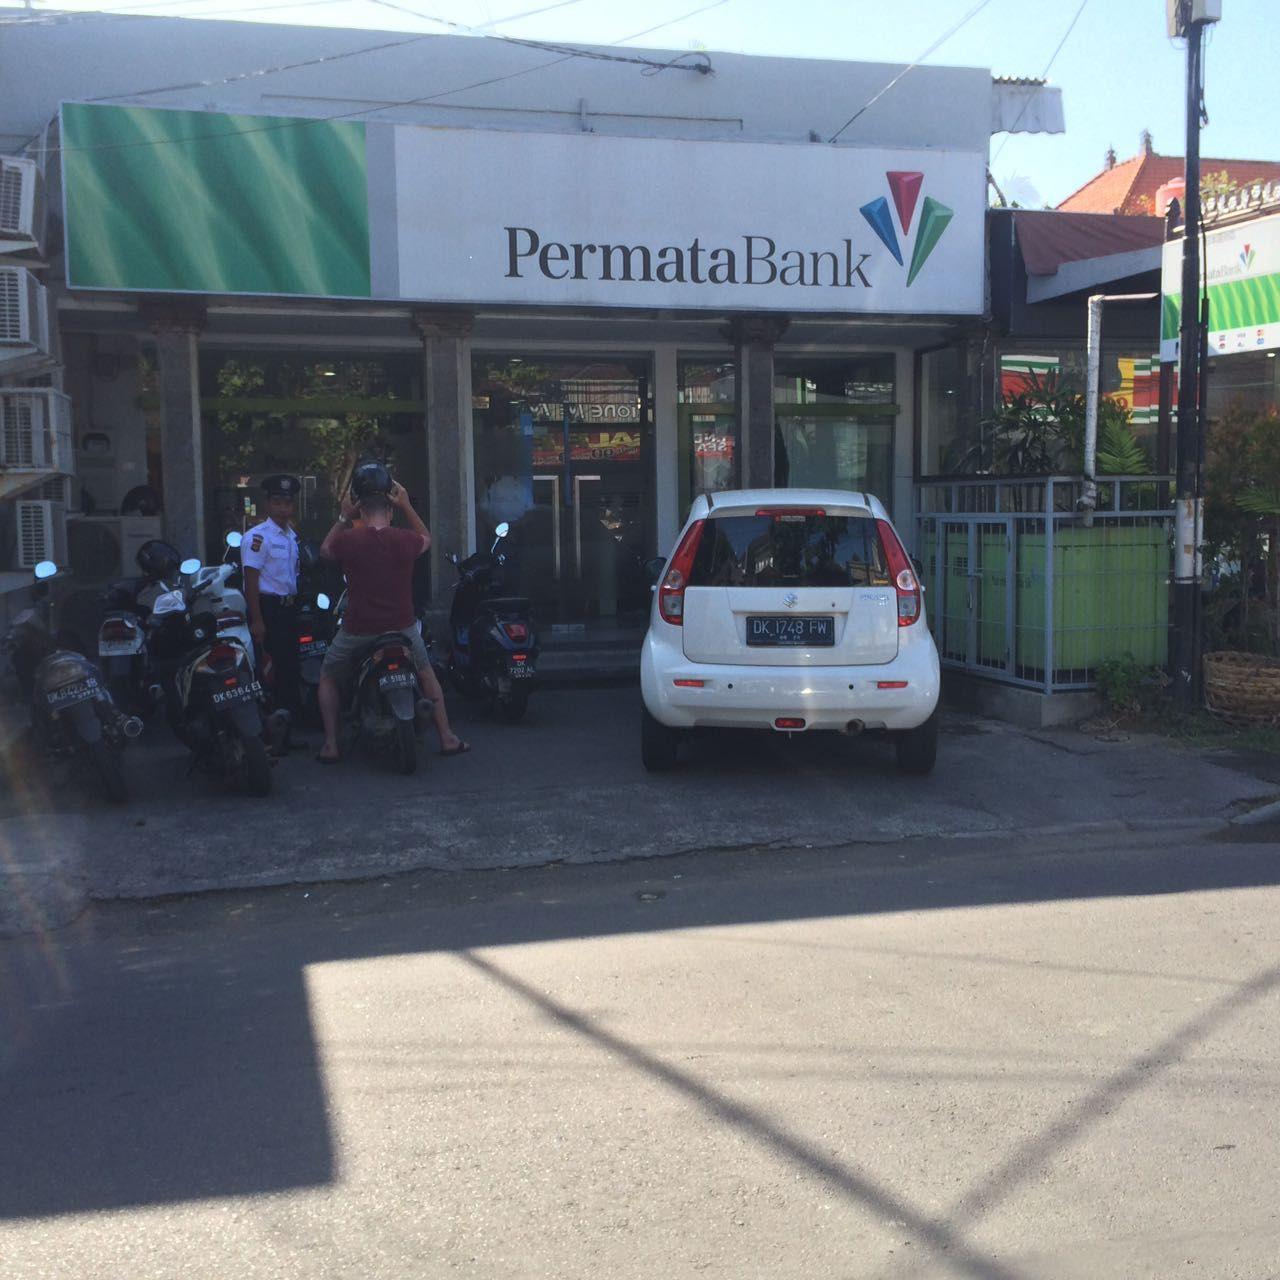 Permata Bank  Location: Jalan Tambalingan  Top Tip: Use permata bank if you want to maximise your witdrawl amount from an ATM. most Bank ATM's allow a maximum withdrawl (per transaction) limit of 1.5 million idr, Permata allows 3 million idr per transaction.